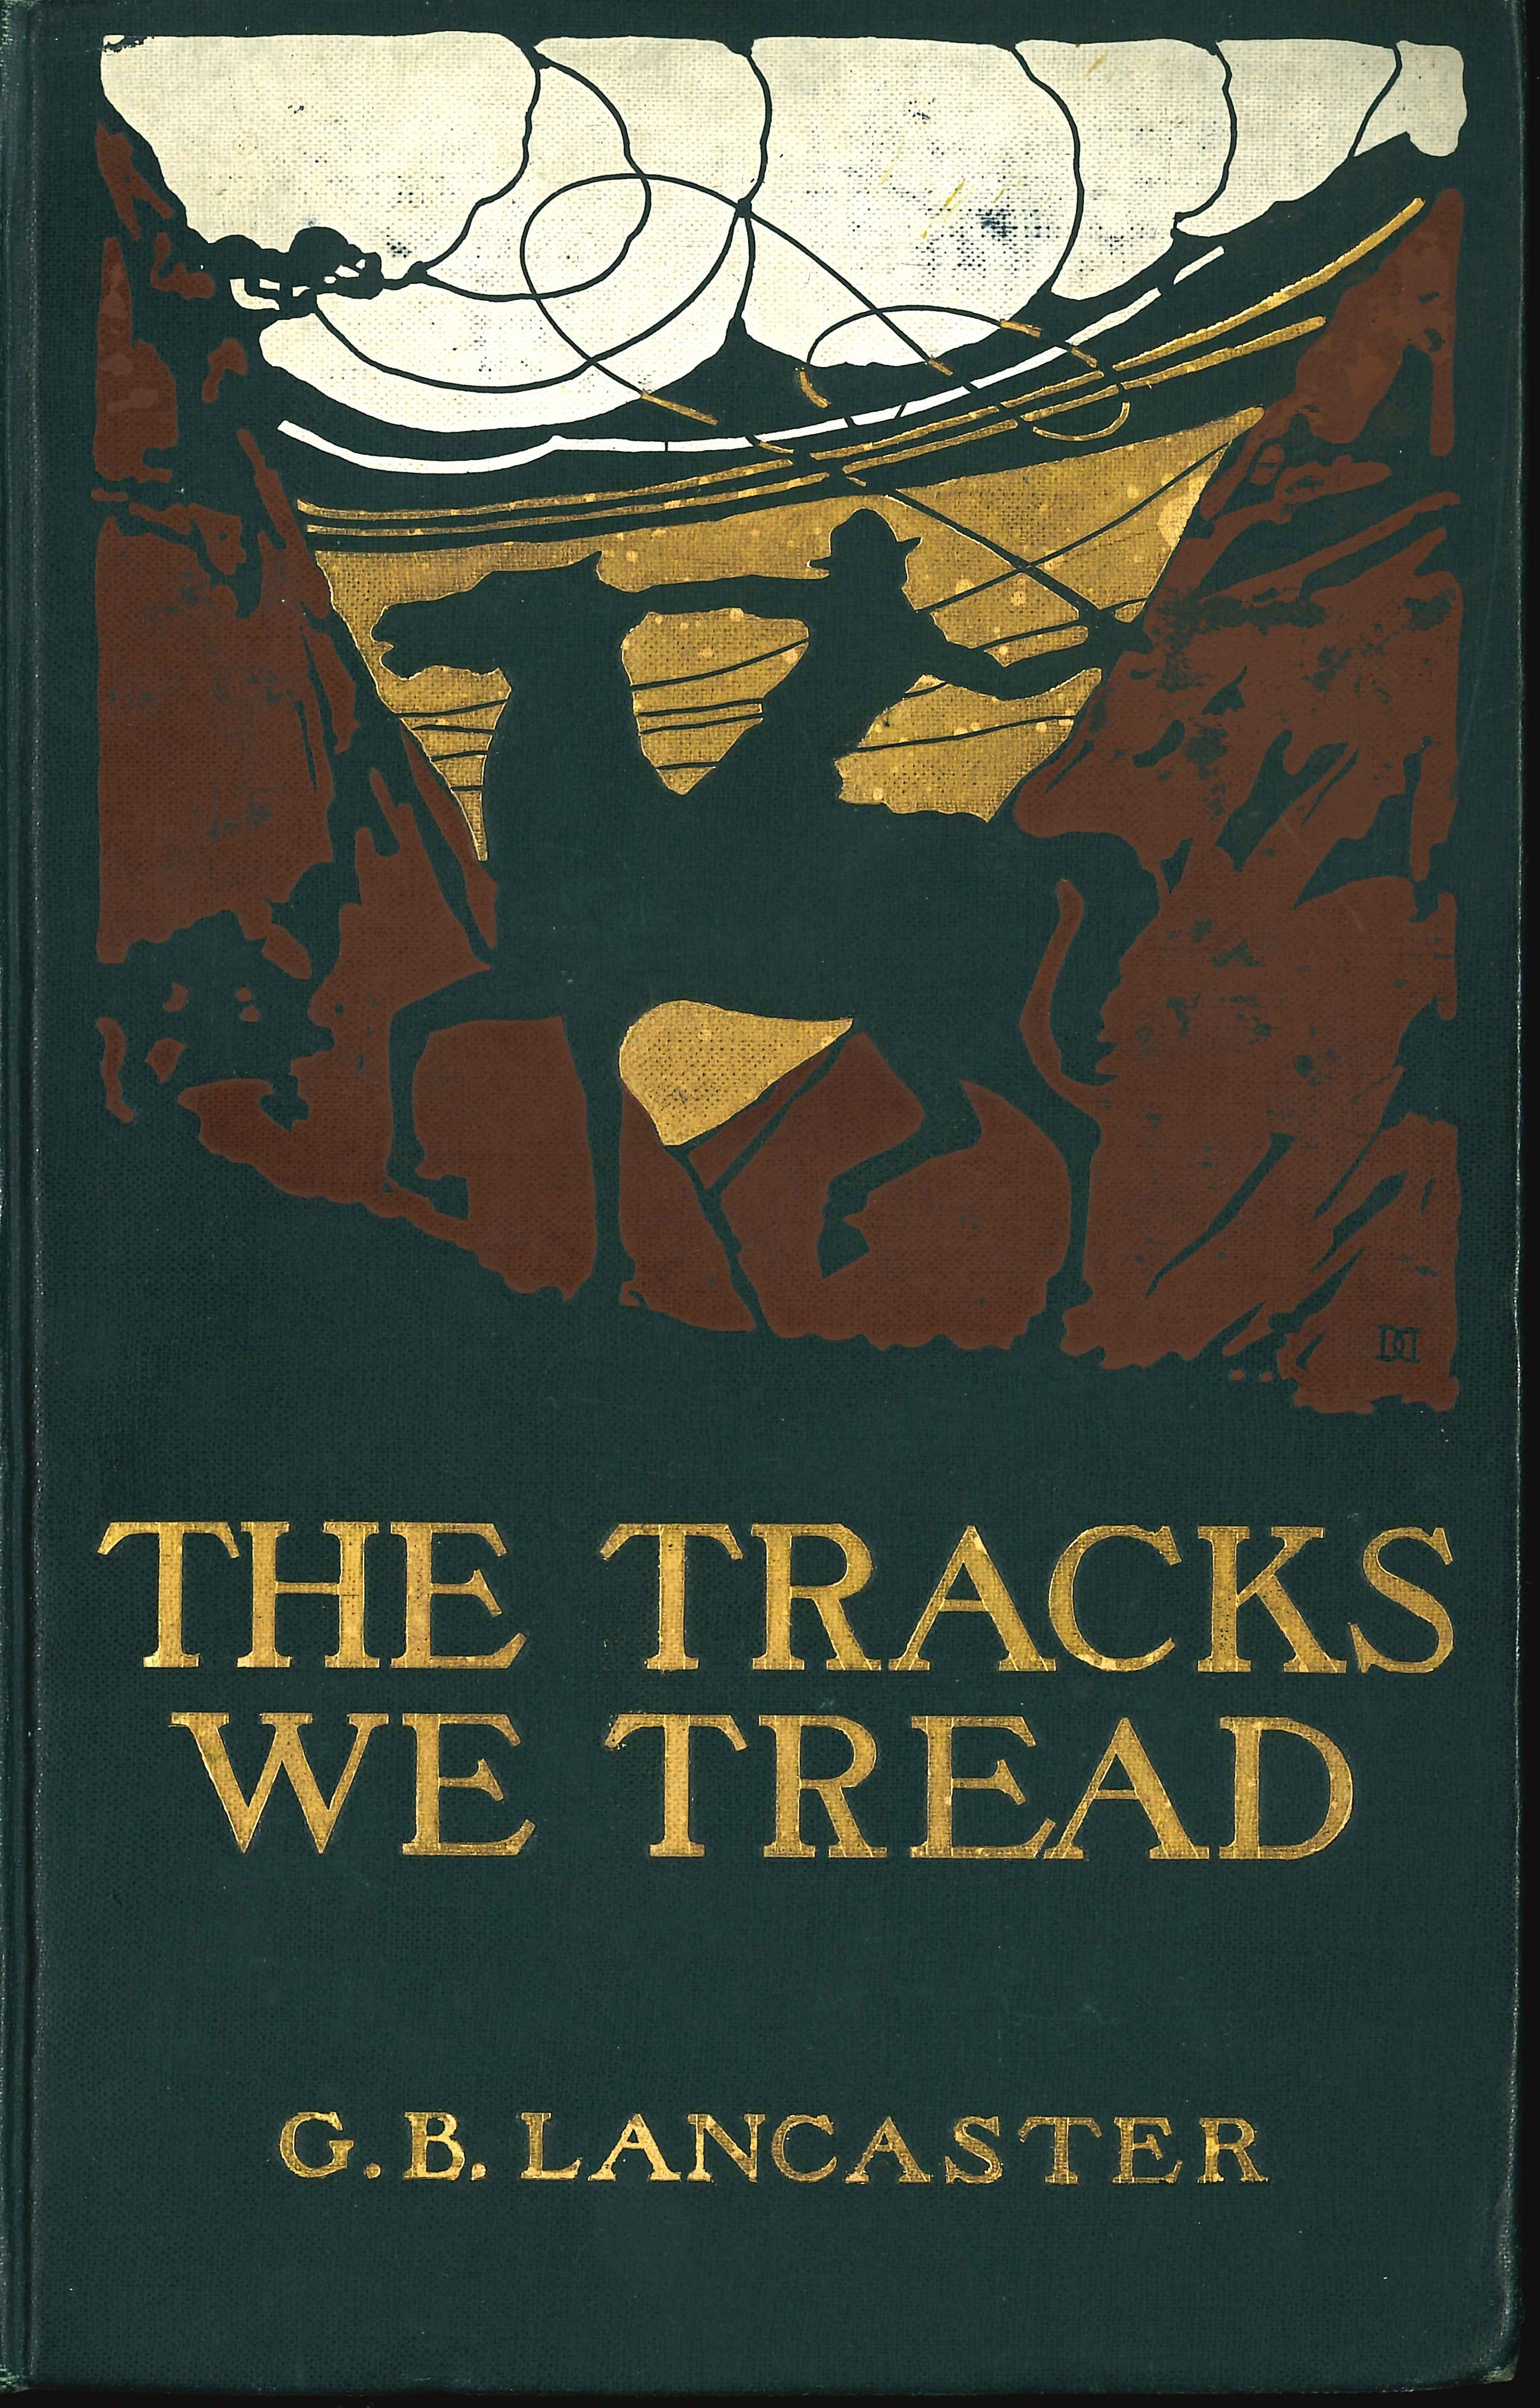 G.B. Lancaster. The tracks we tread. London: Doubleday, Page, 1907.